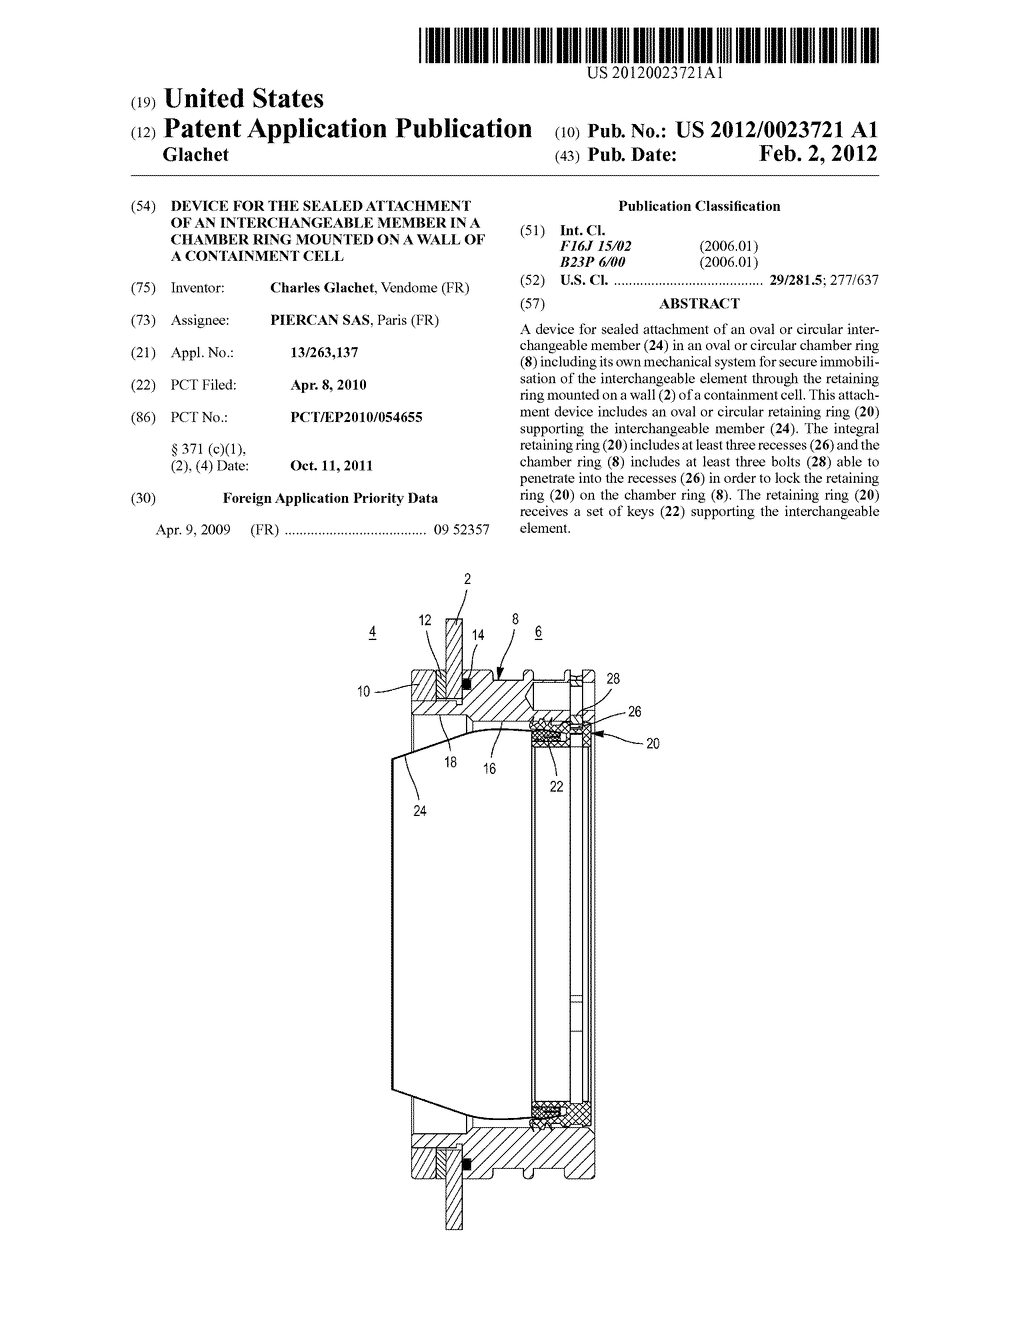 DEVICE FOR THE SEALED ATTACHMENT OF AN INTERCHANGEABLE MEMBER IN A CHAMBER     RING MOUNTED ON A WALL OF A CONTAINMENT CELL - diagram, schematic, and image 01